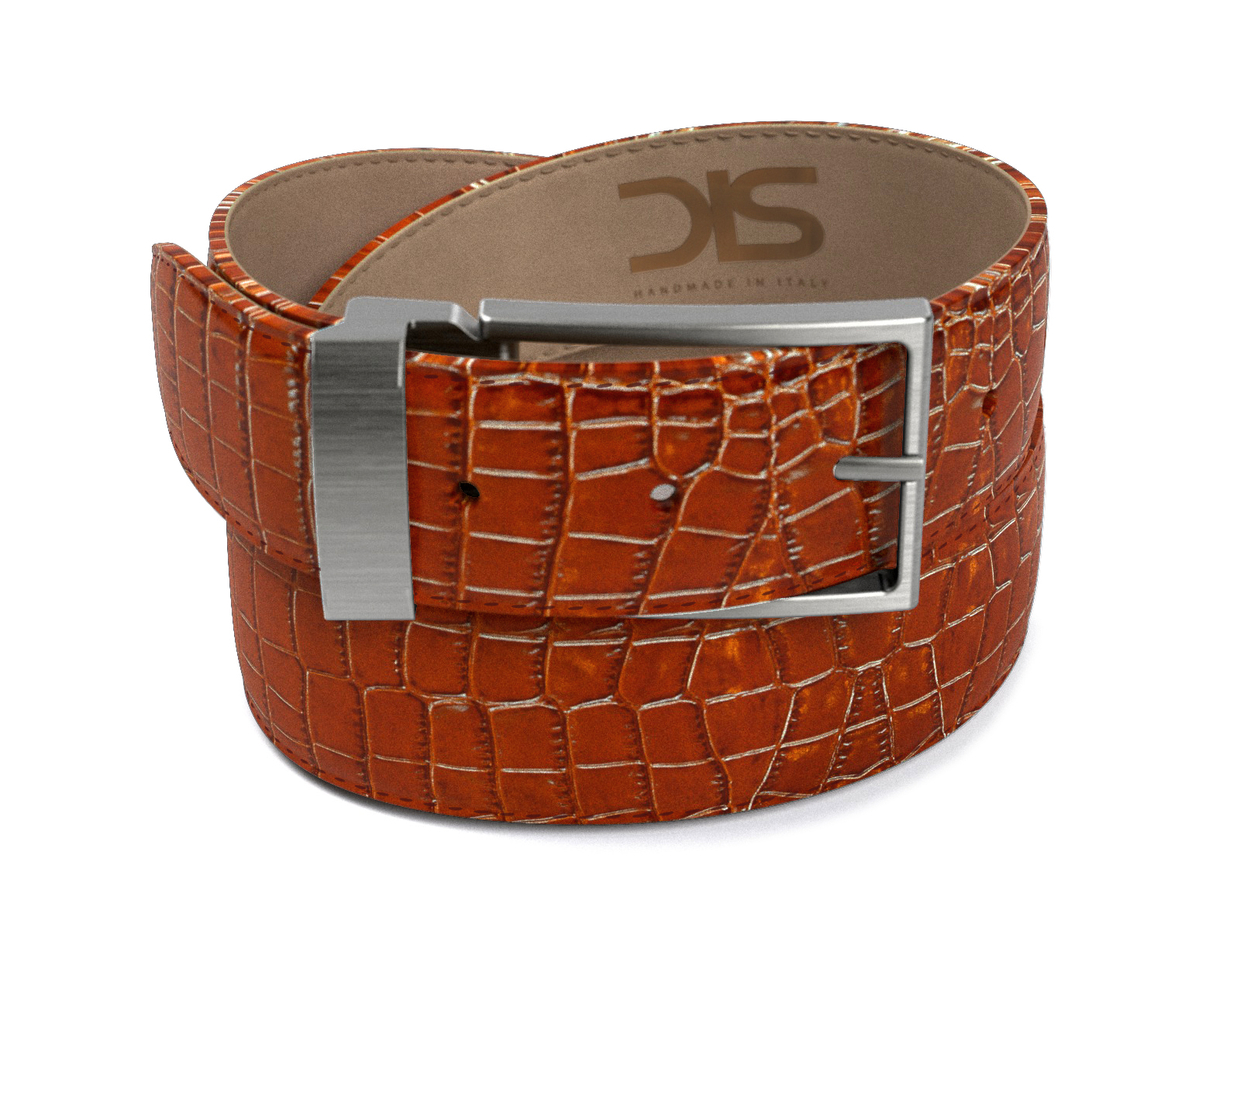 Tan crocodile leather belt with opaque buckle